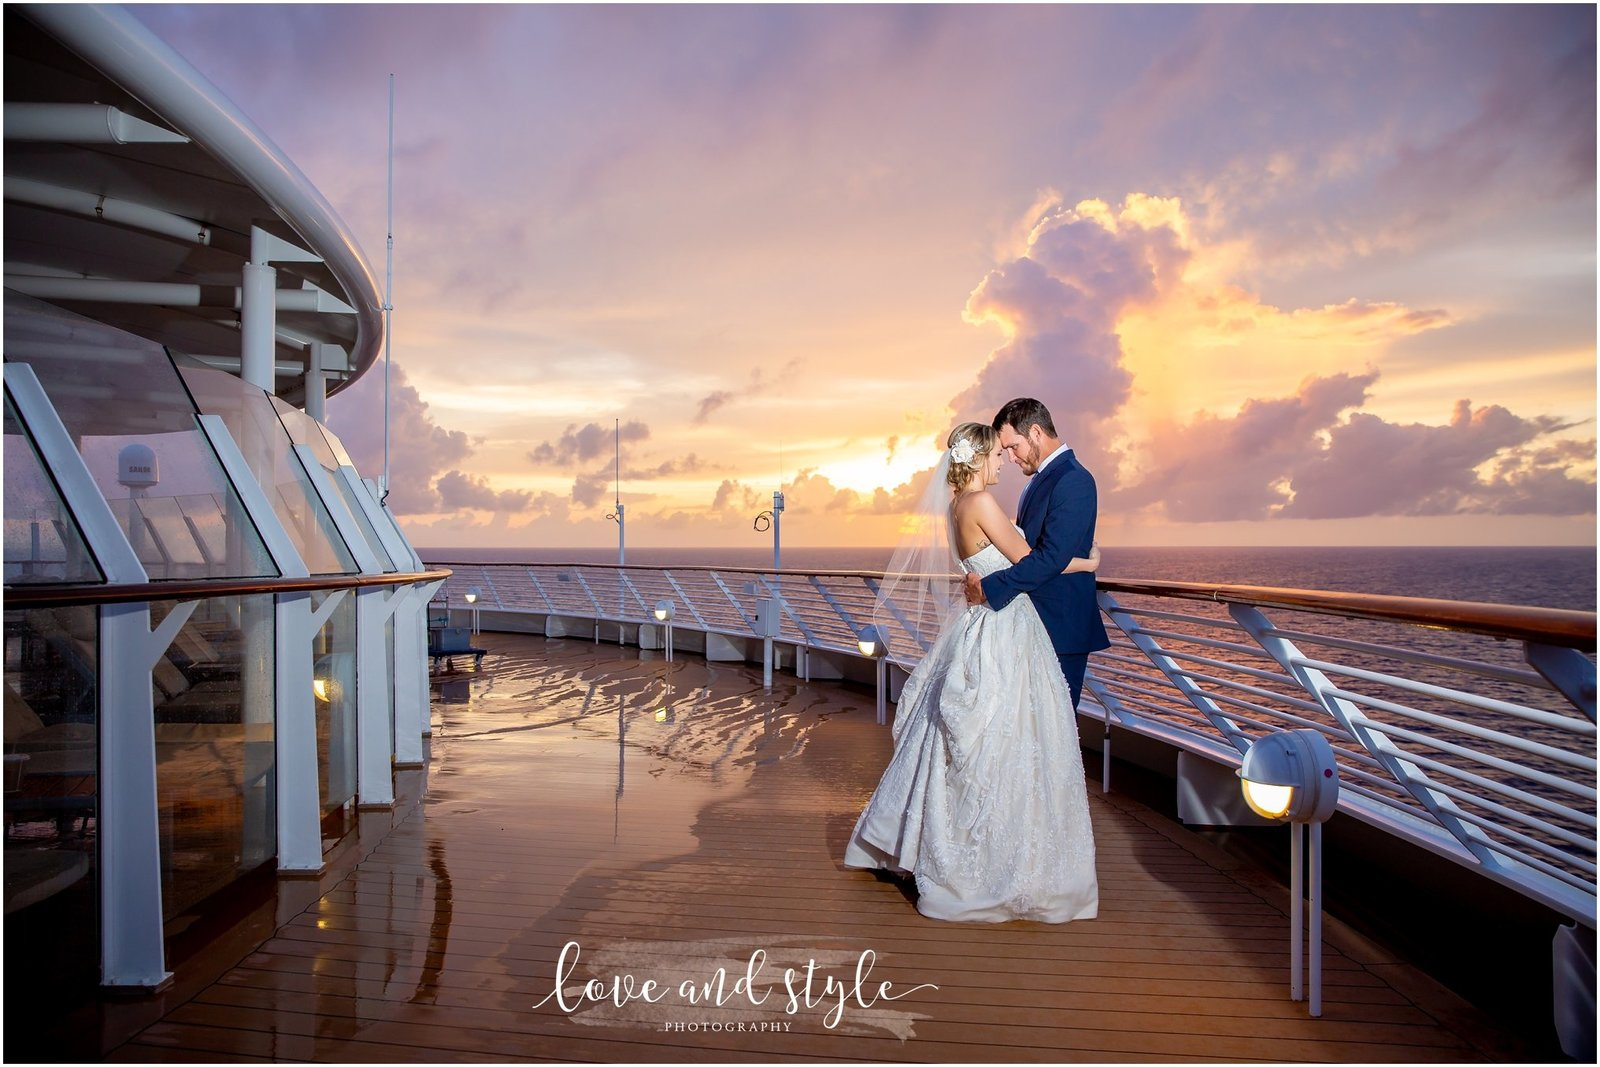 Bride and Groom Portrait aboard the Disney Dream Cruise Ship at Sunset